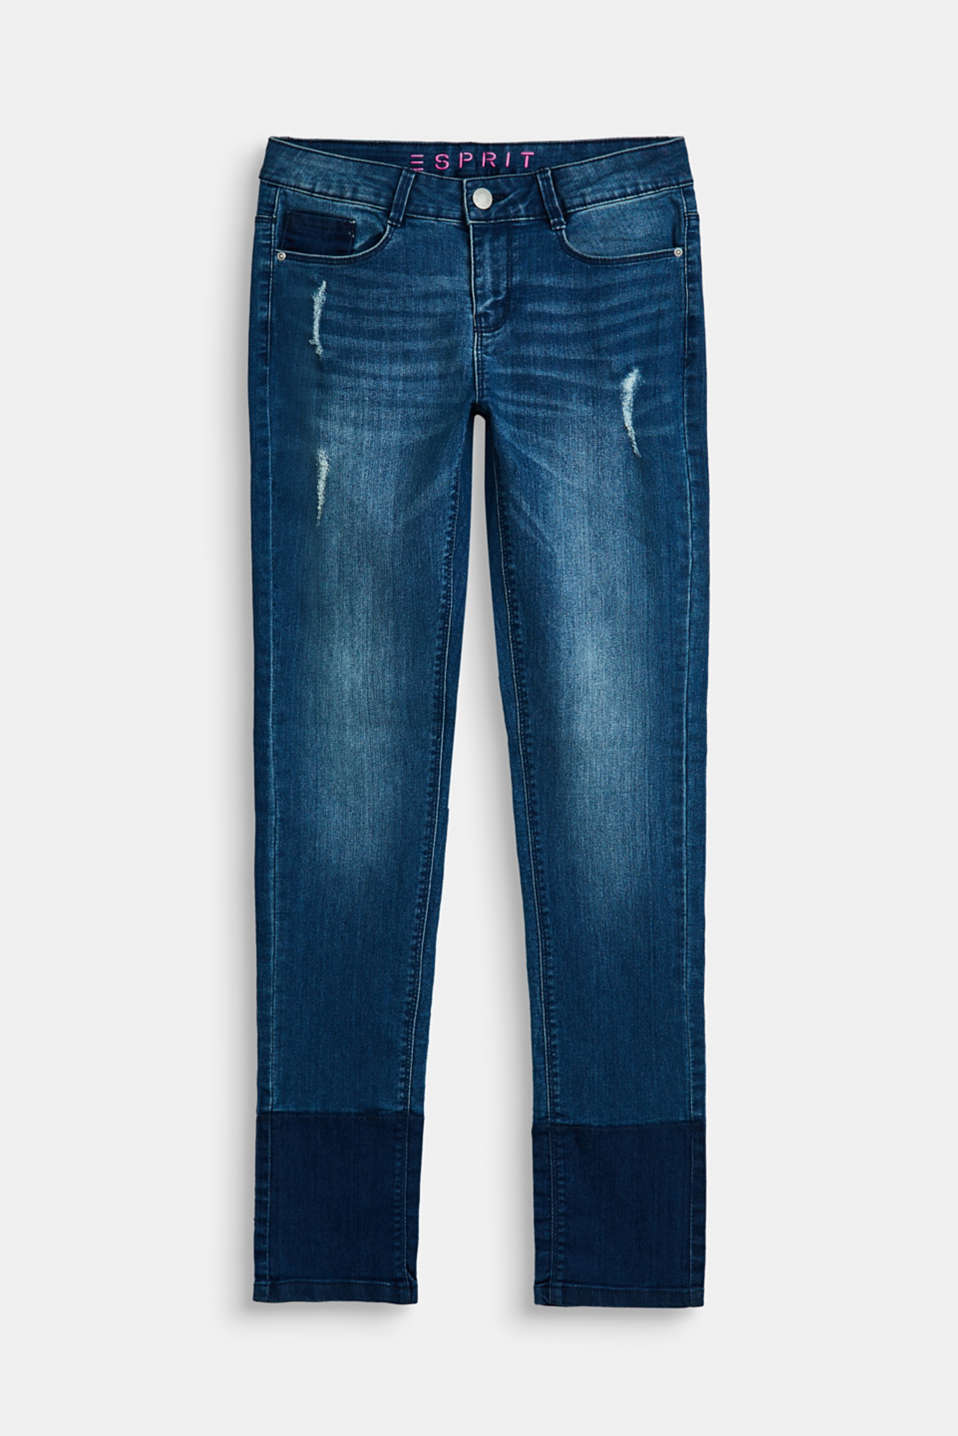 Esprit - Superstretch-Jeans mit Destroyed-Effekten